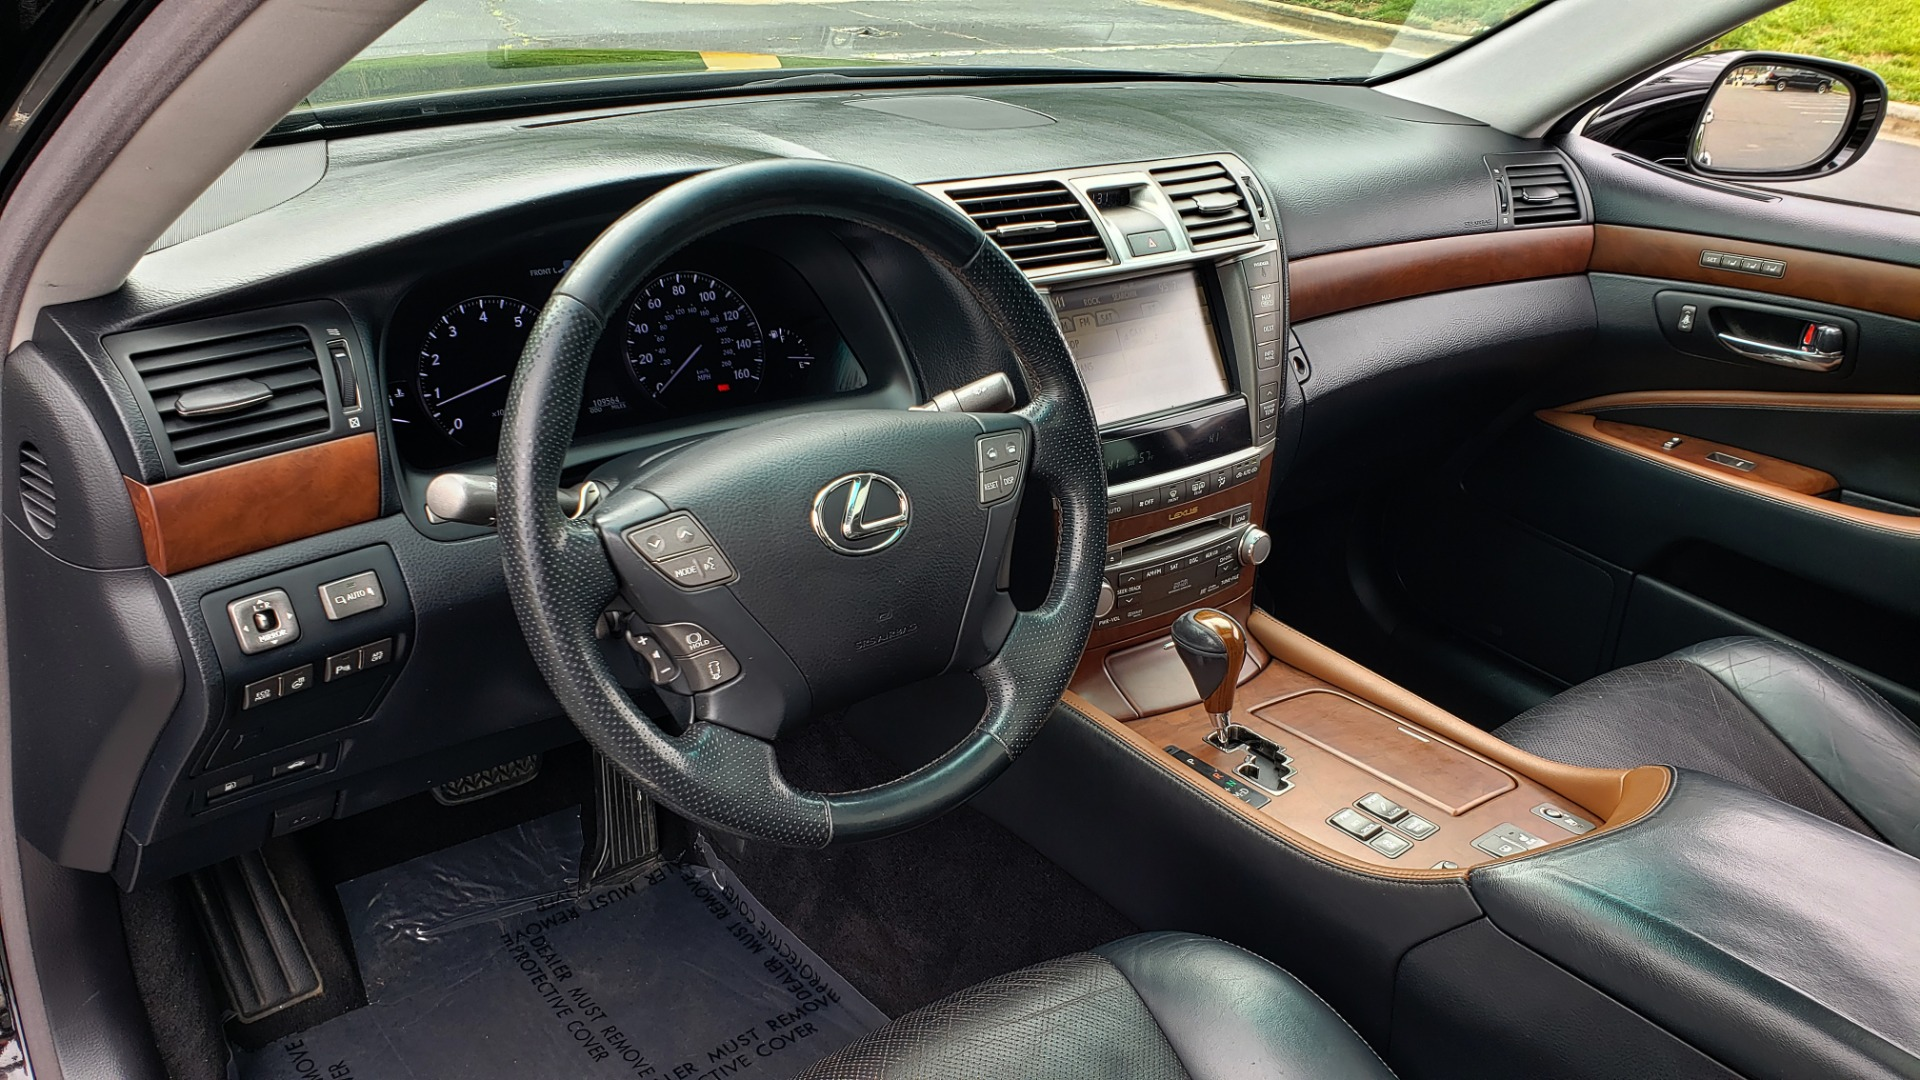 Used 2012 Lexus LS 460 COMFORT W/SPORT / VENT SEATS / NAV / MARK LEV SND / SUNROOF for sale Sold at Formula Imports in Charlotte NC 28227 36